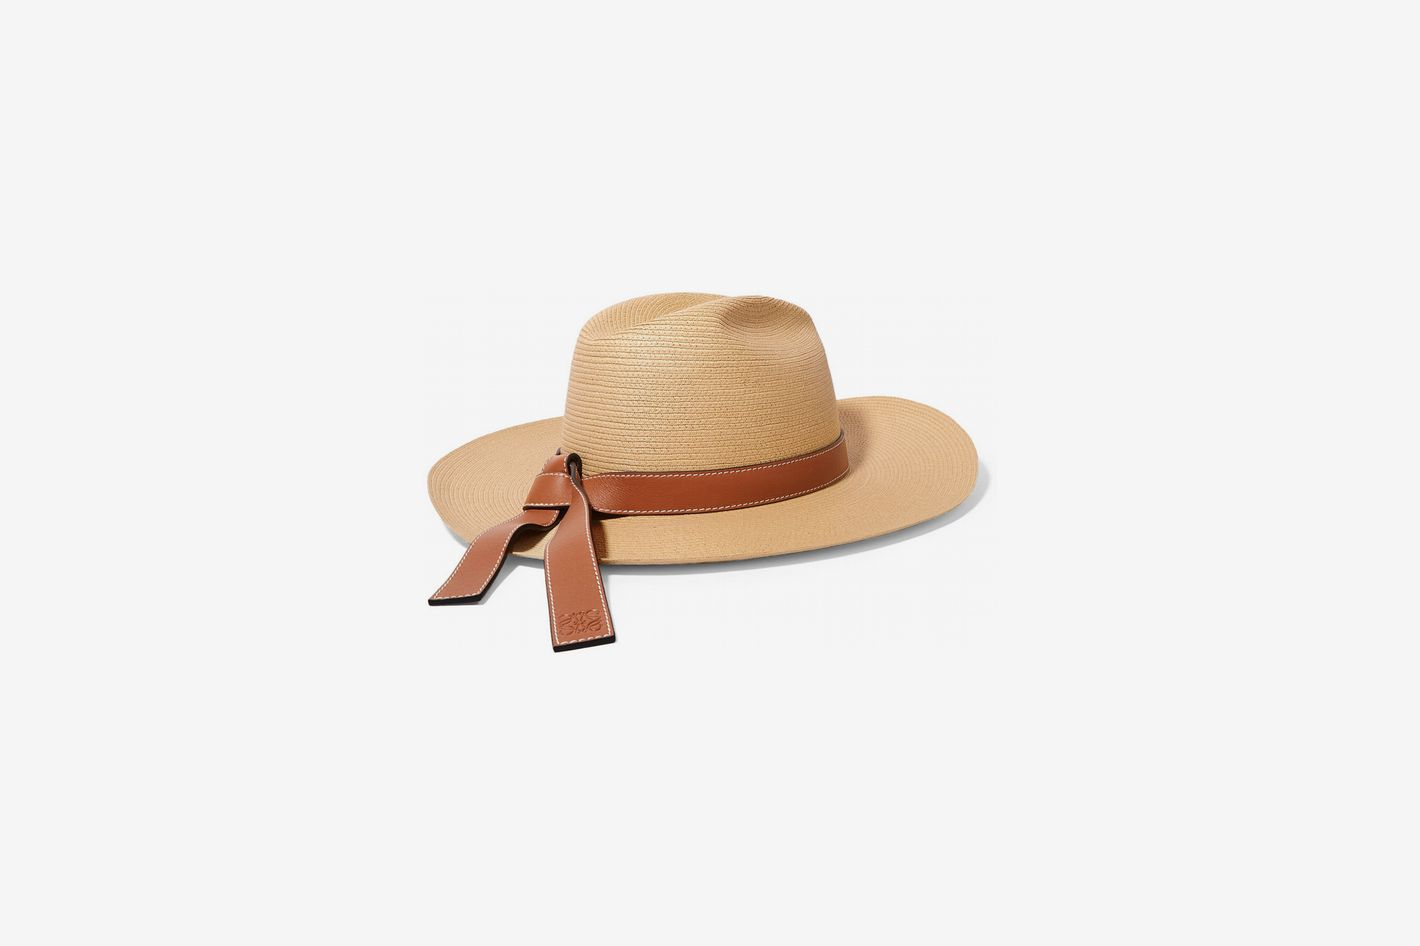 Loewe Paula's Ibiza Leather-Trimmed Straw Hat